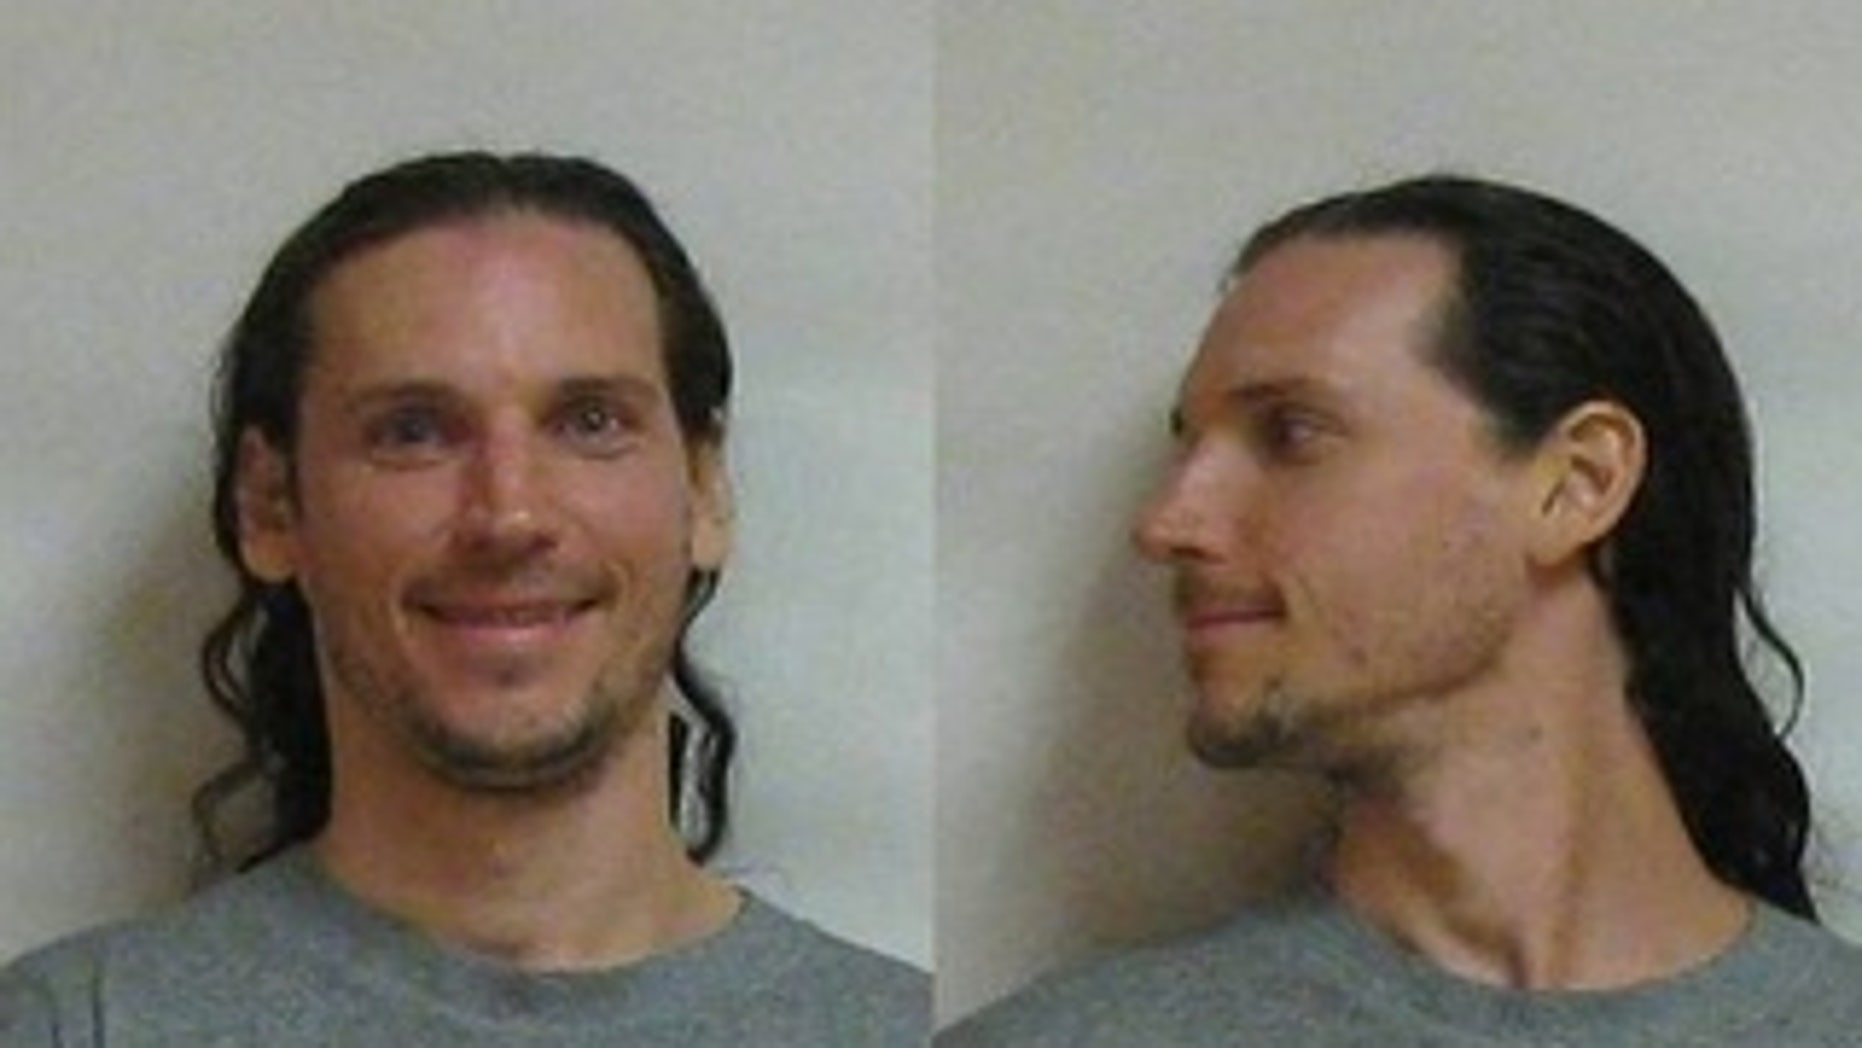 Curtis N. Condell, accused of vandalising a church and over 30 religious statues in New Jersey.